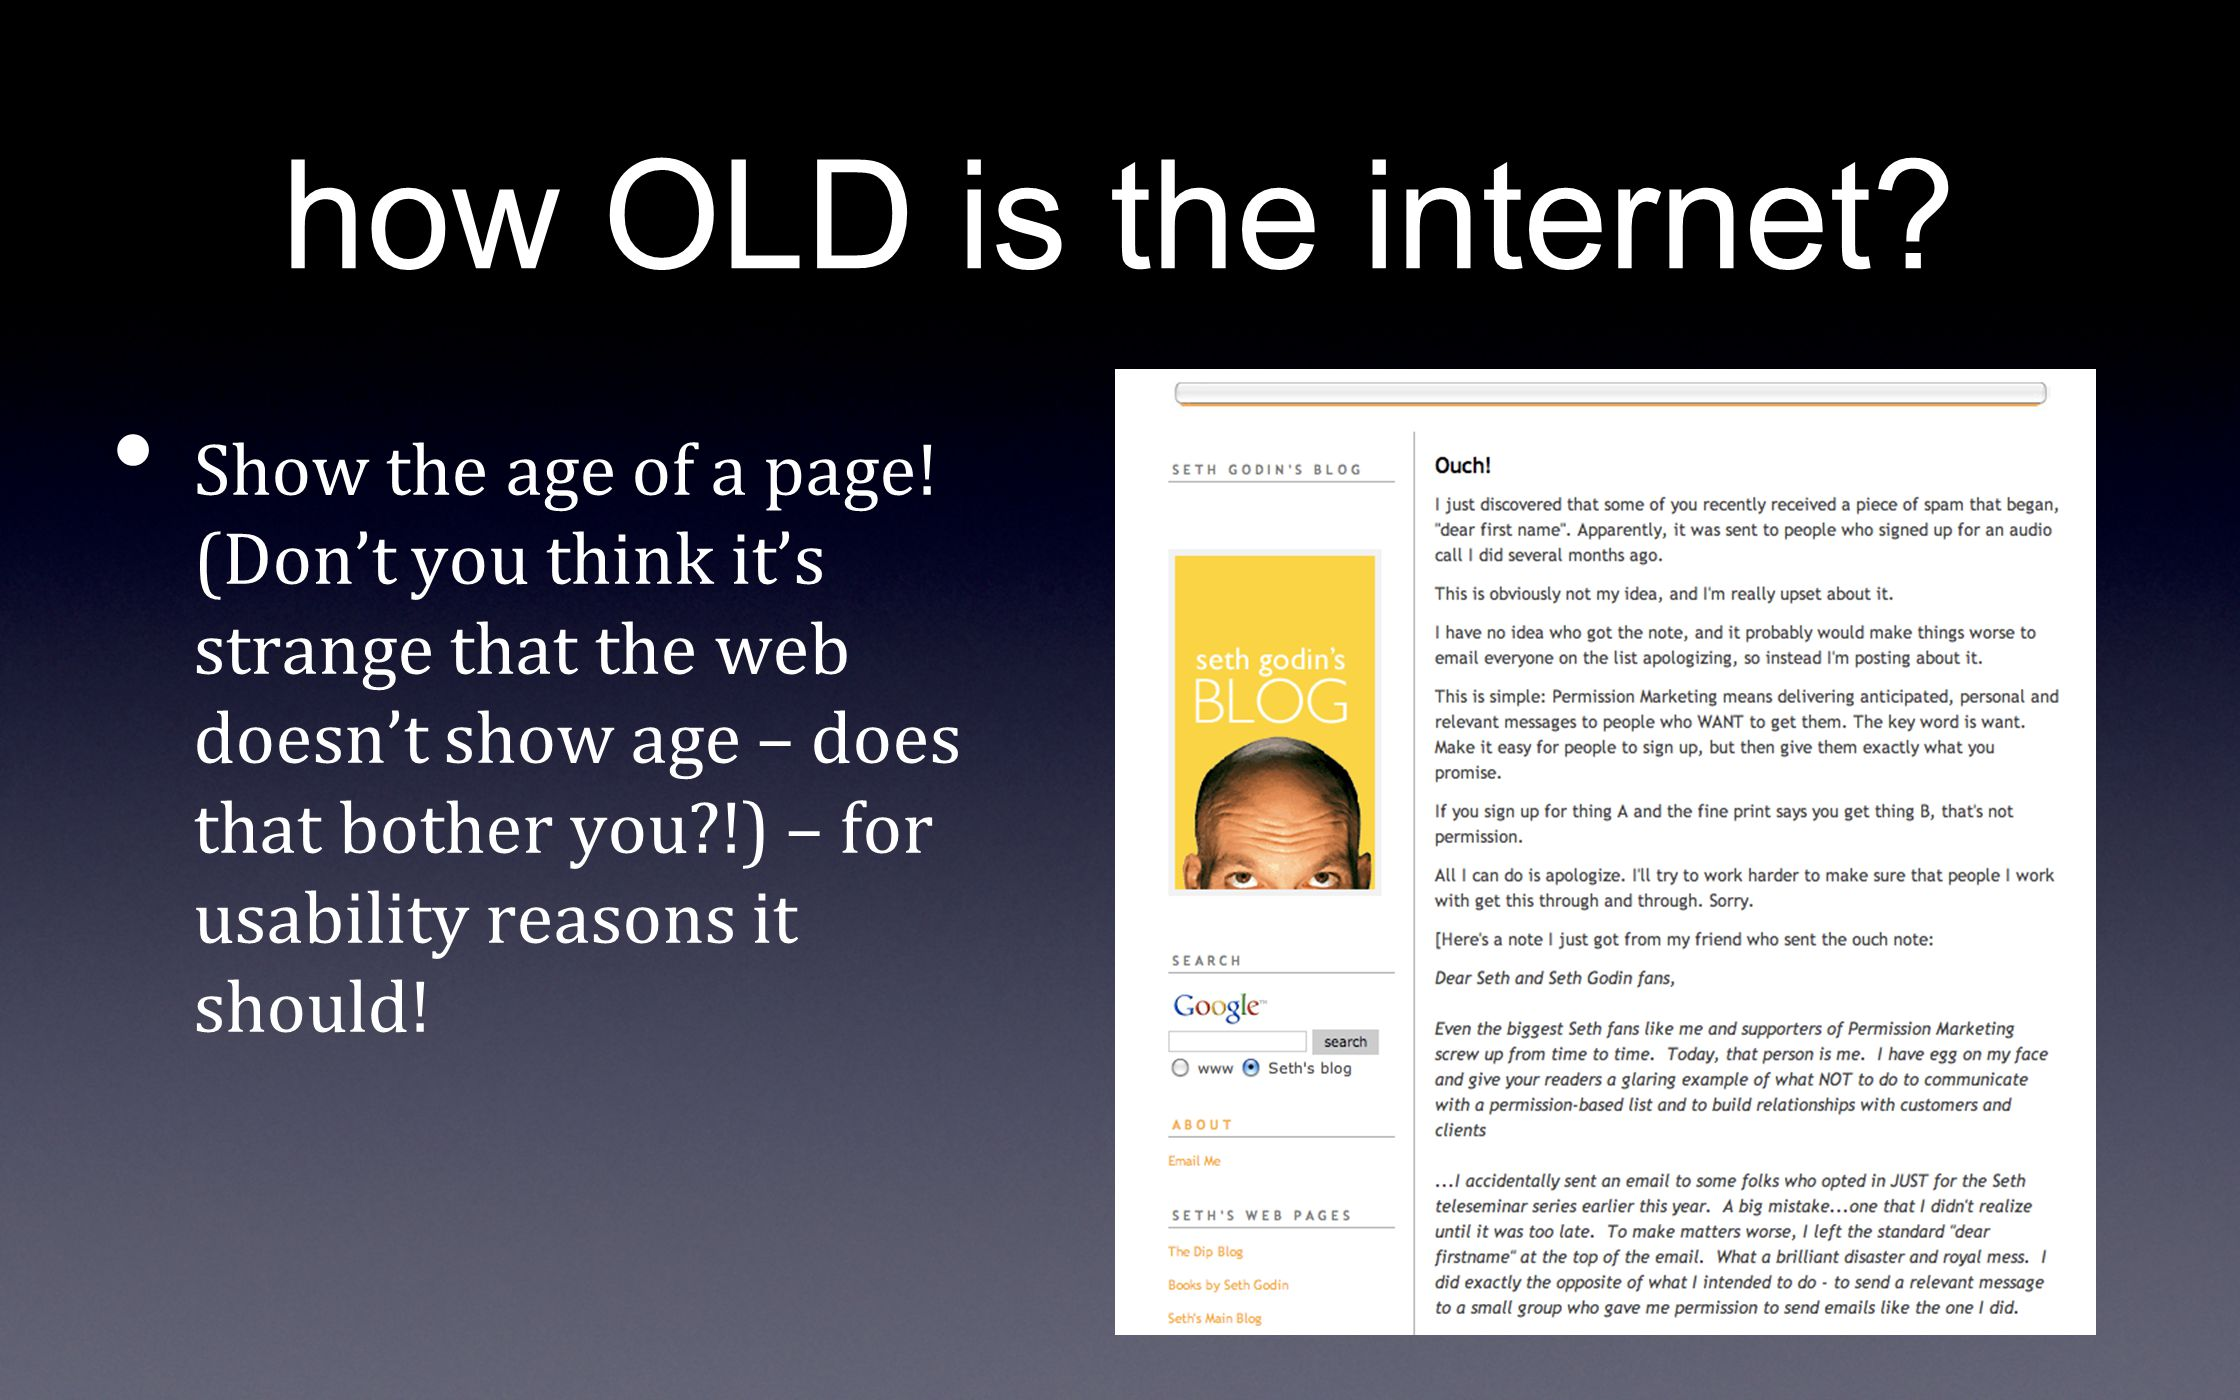 how OLD is the internet? Show the age of a page! (Don't you think it's strange that the web doesn't show age – does that bother you?!) – for usability